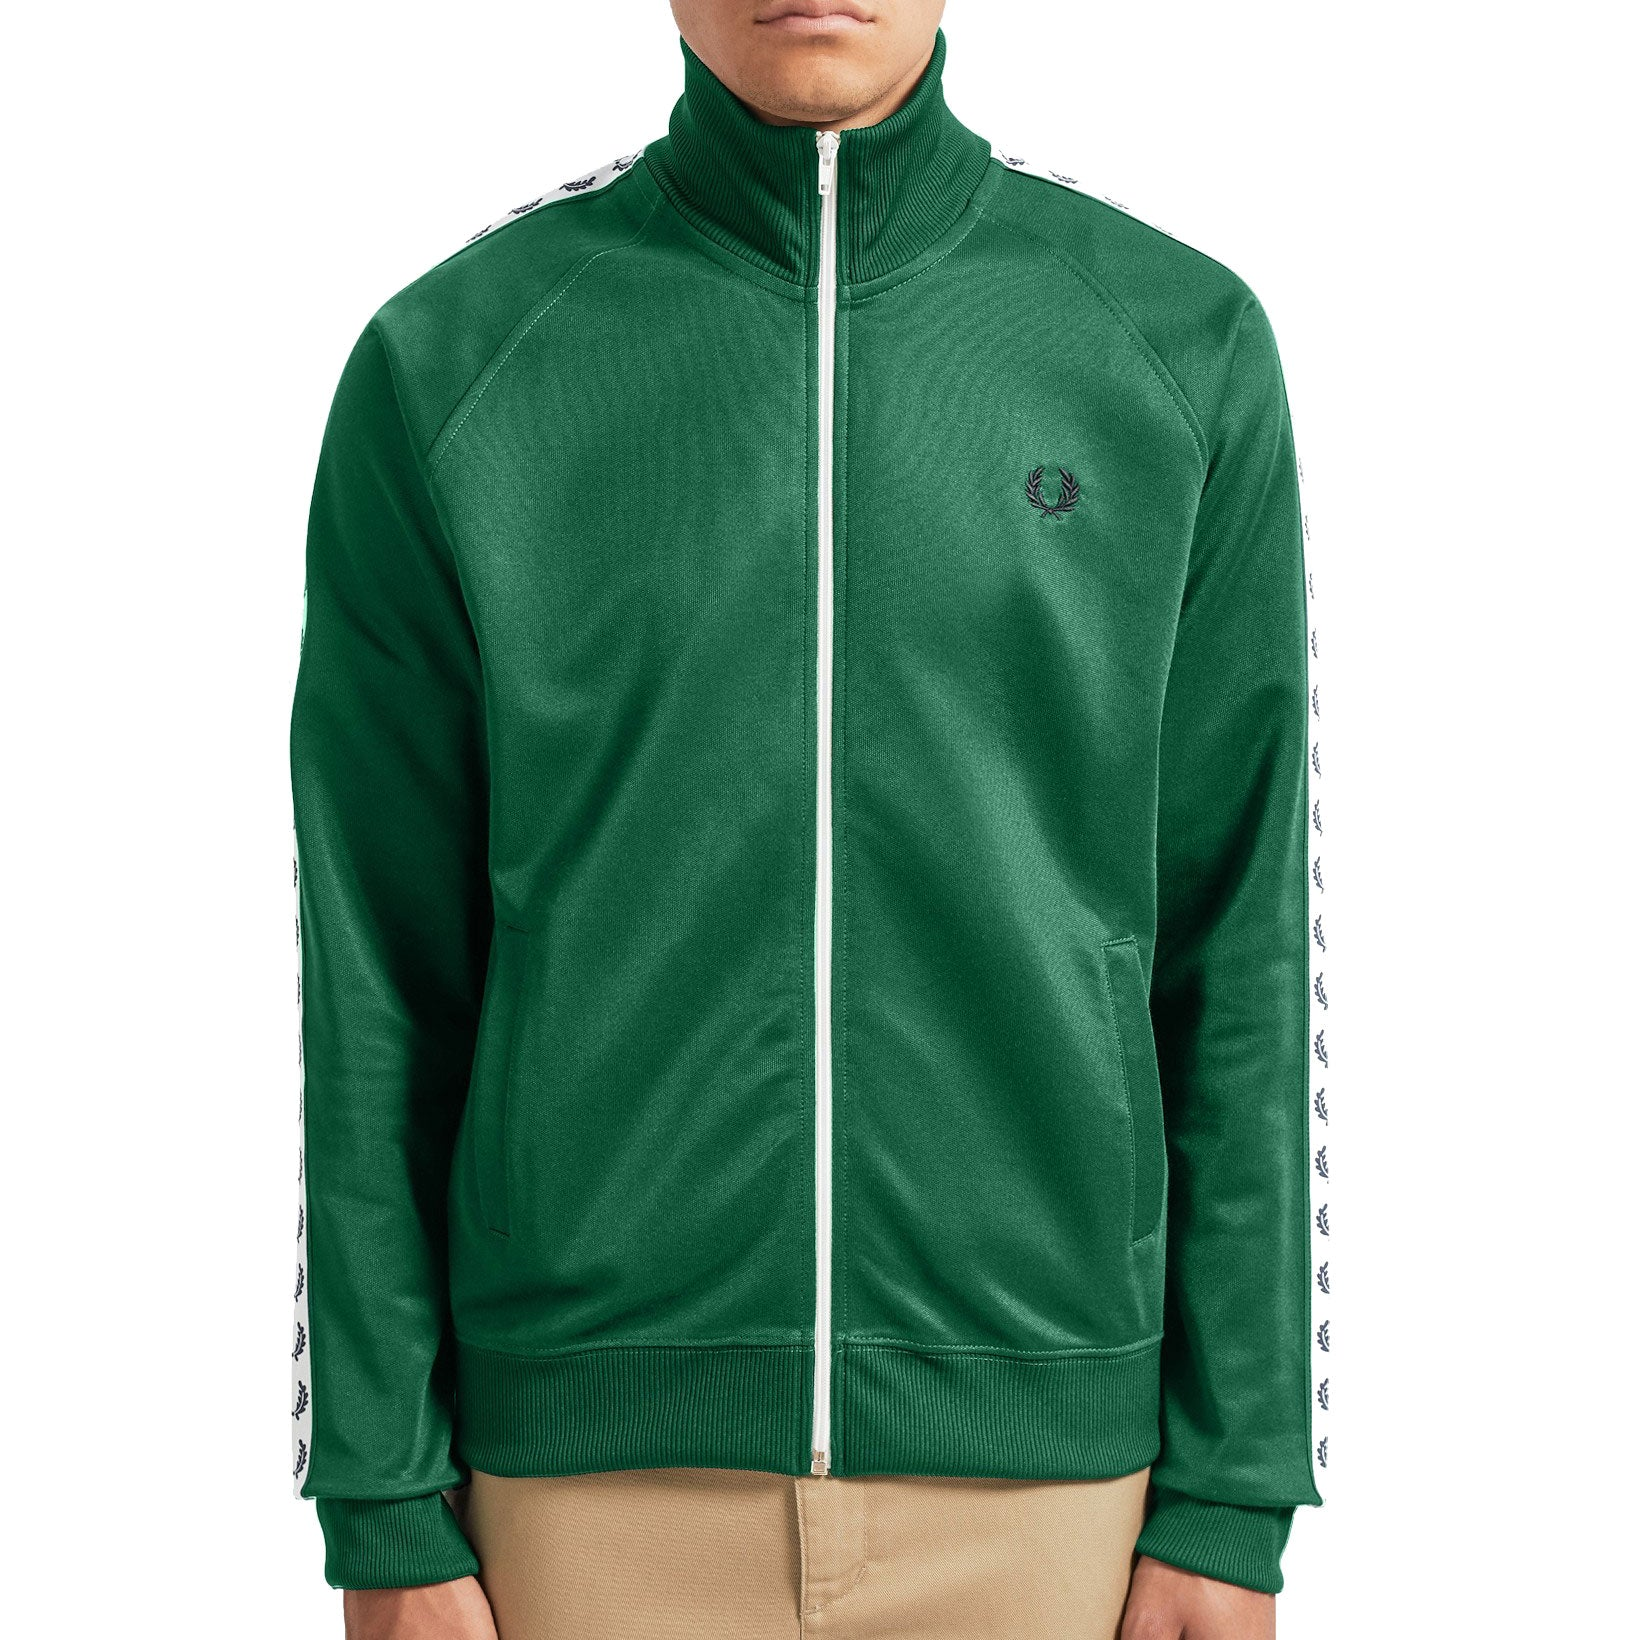 Fred Perry Sports Authentic Taped Track Jacket, Grün